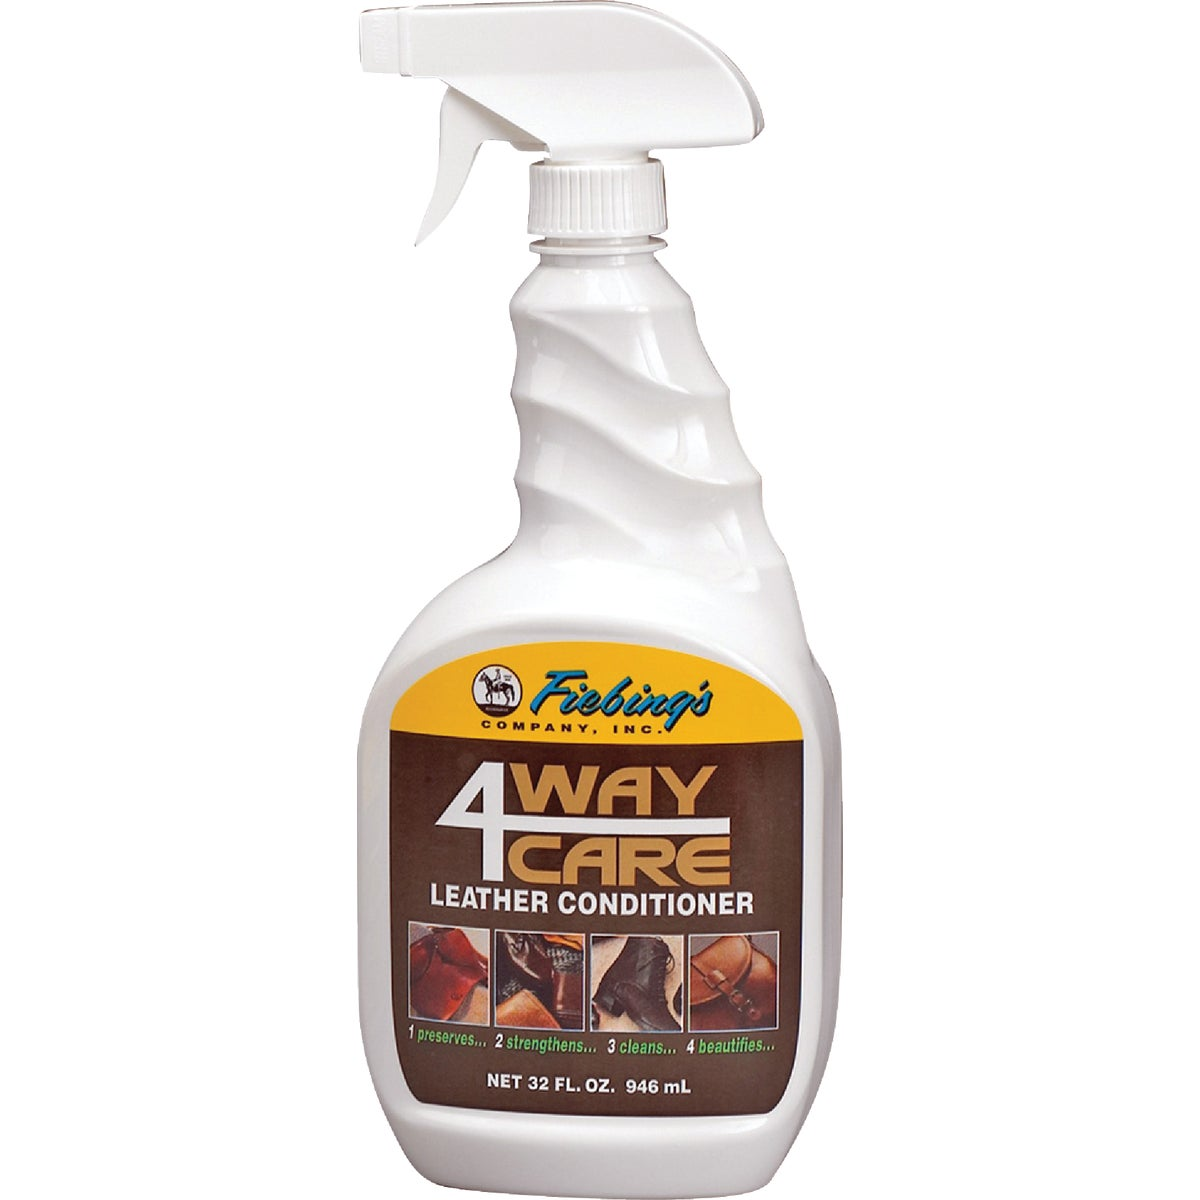 32OZ 4WAY LEATHER SPRAY - CARE00S032Z by Fiebing